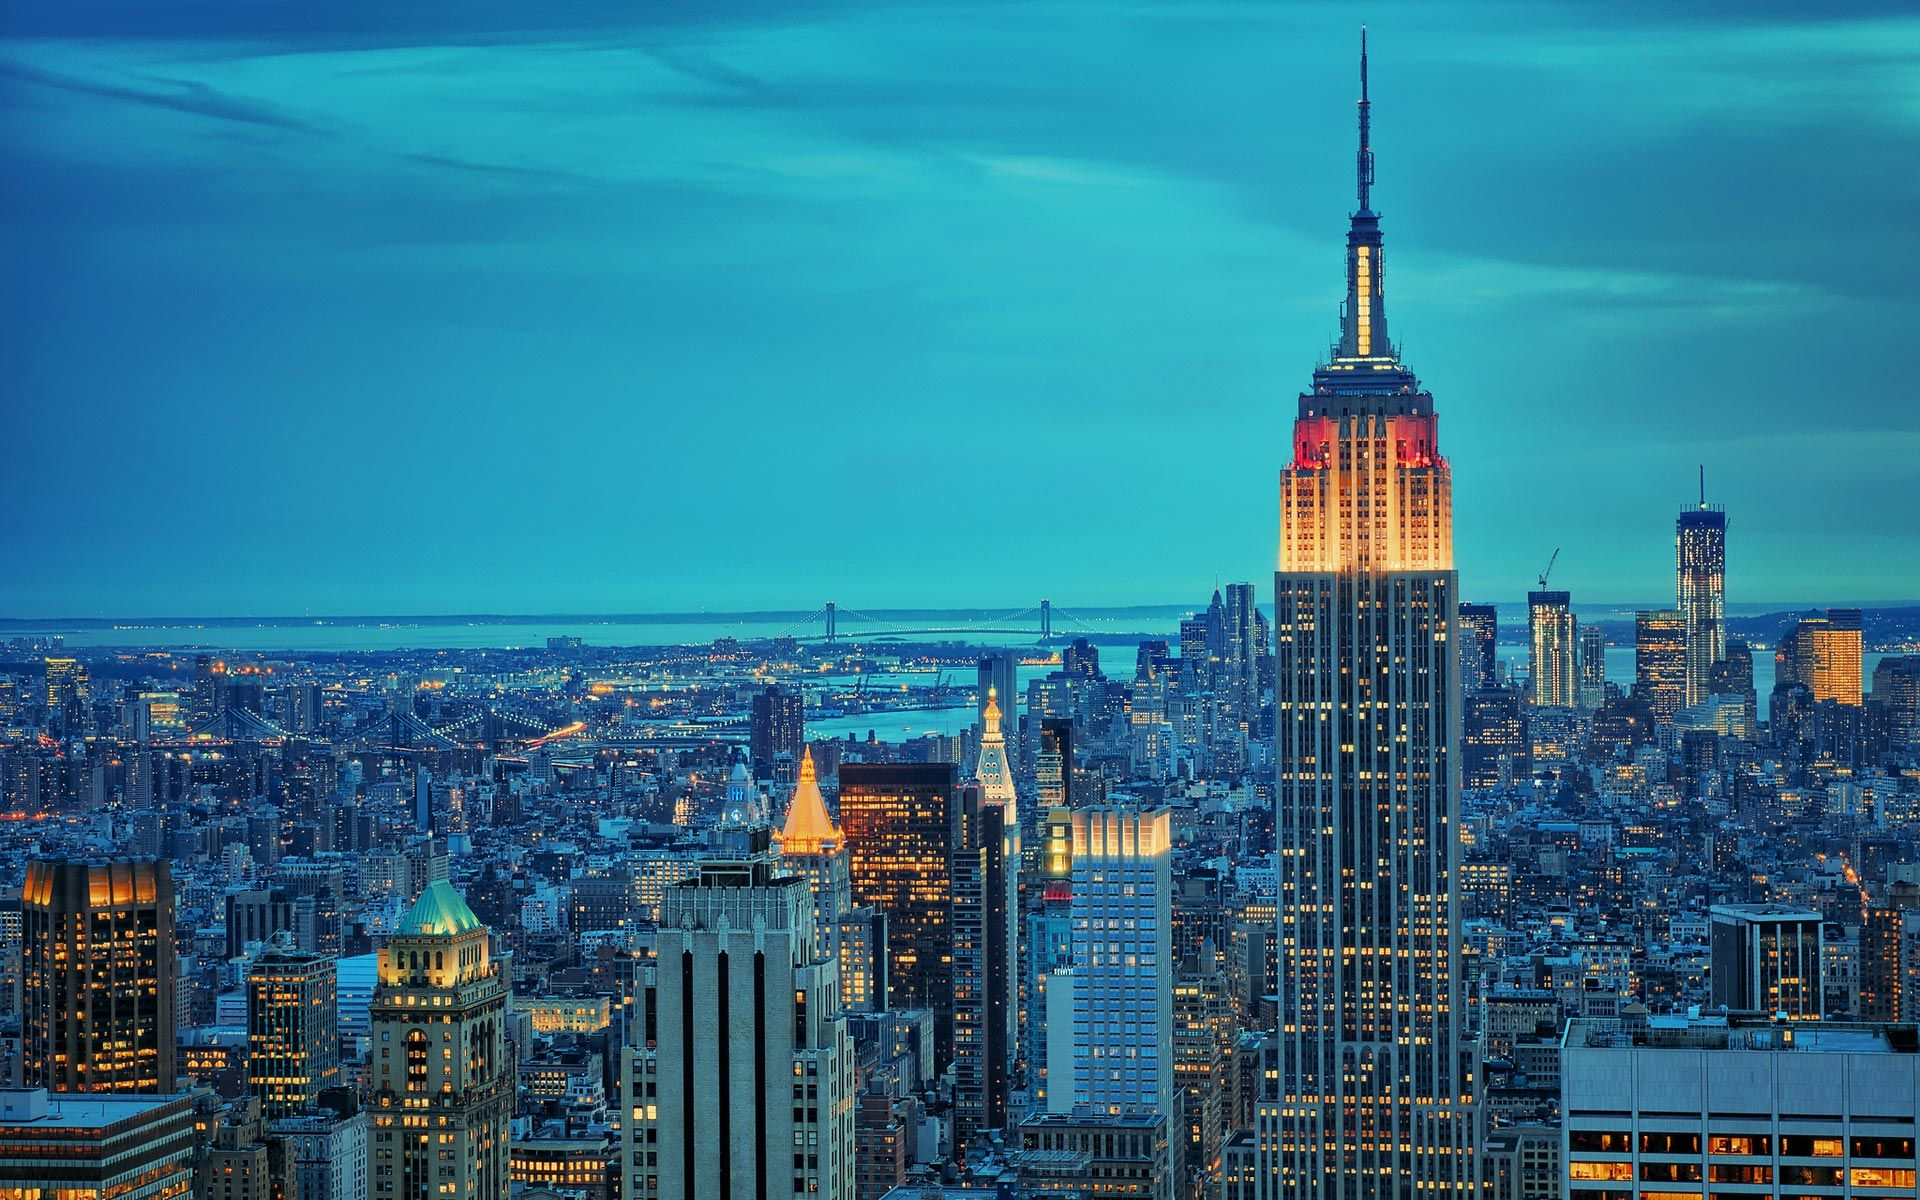 New York City Is Always Moving And Lively Citys Business Commercial Center Of The World